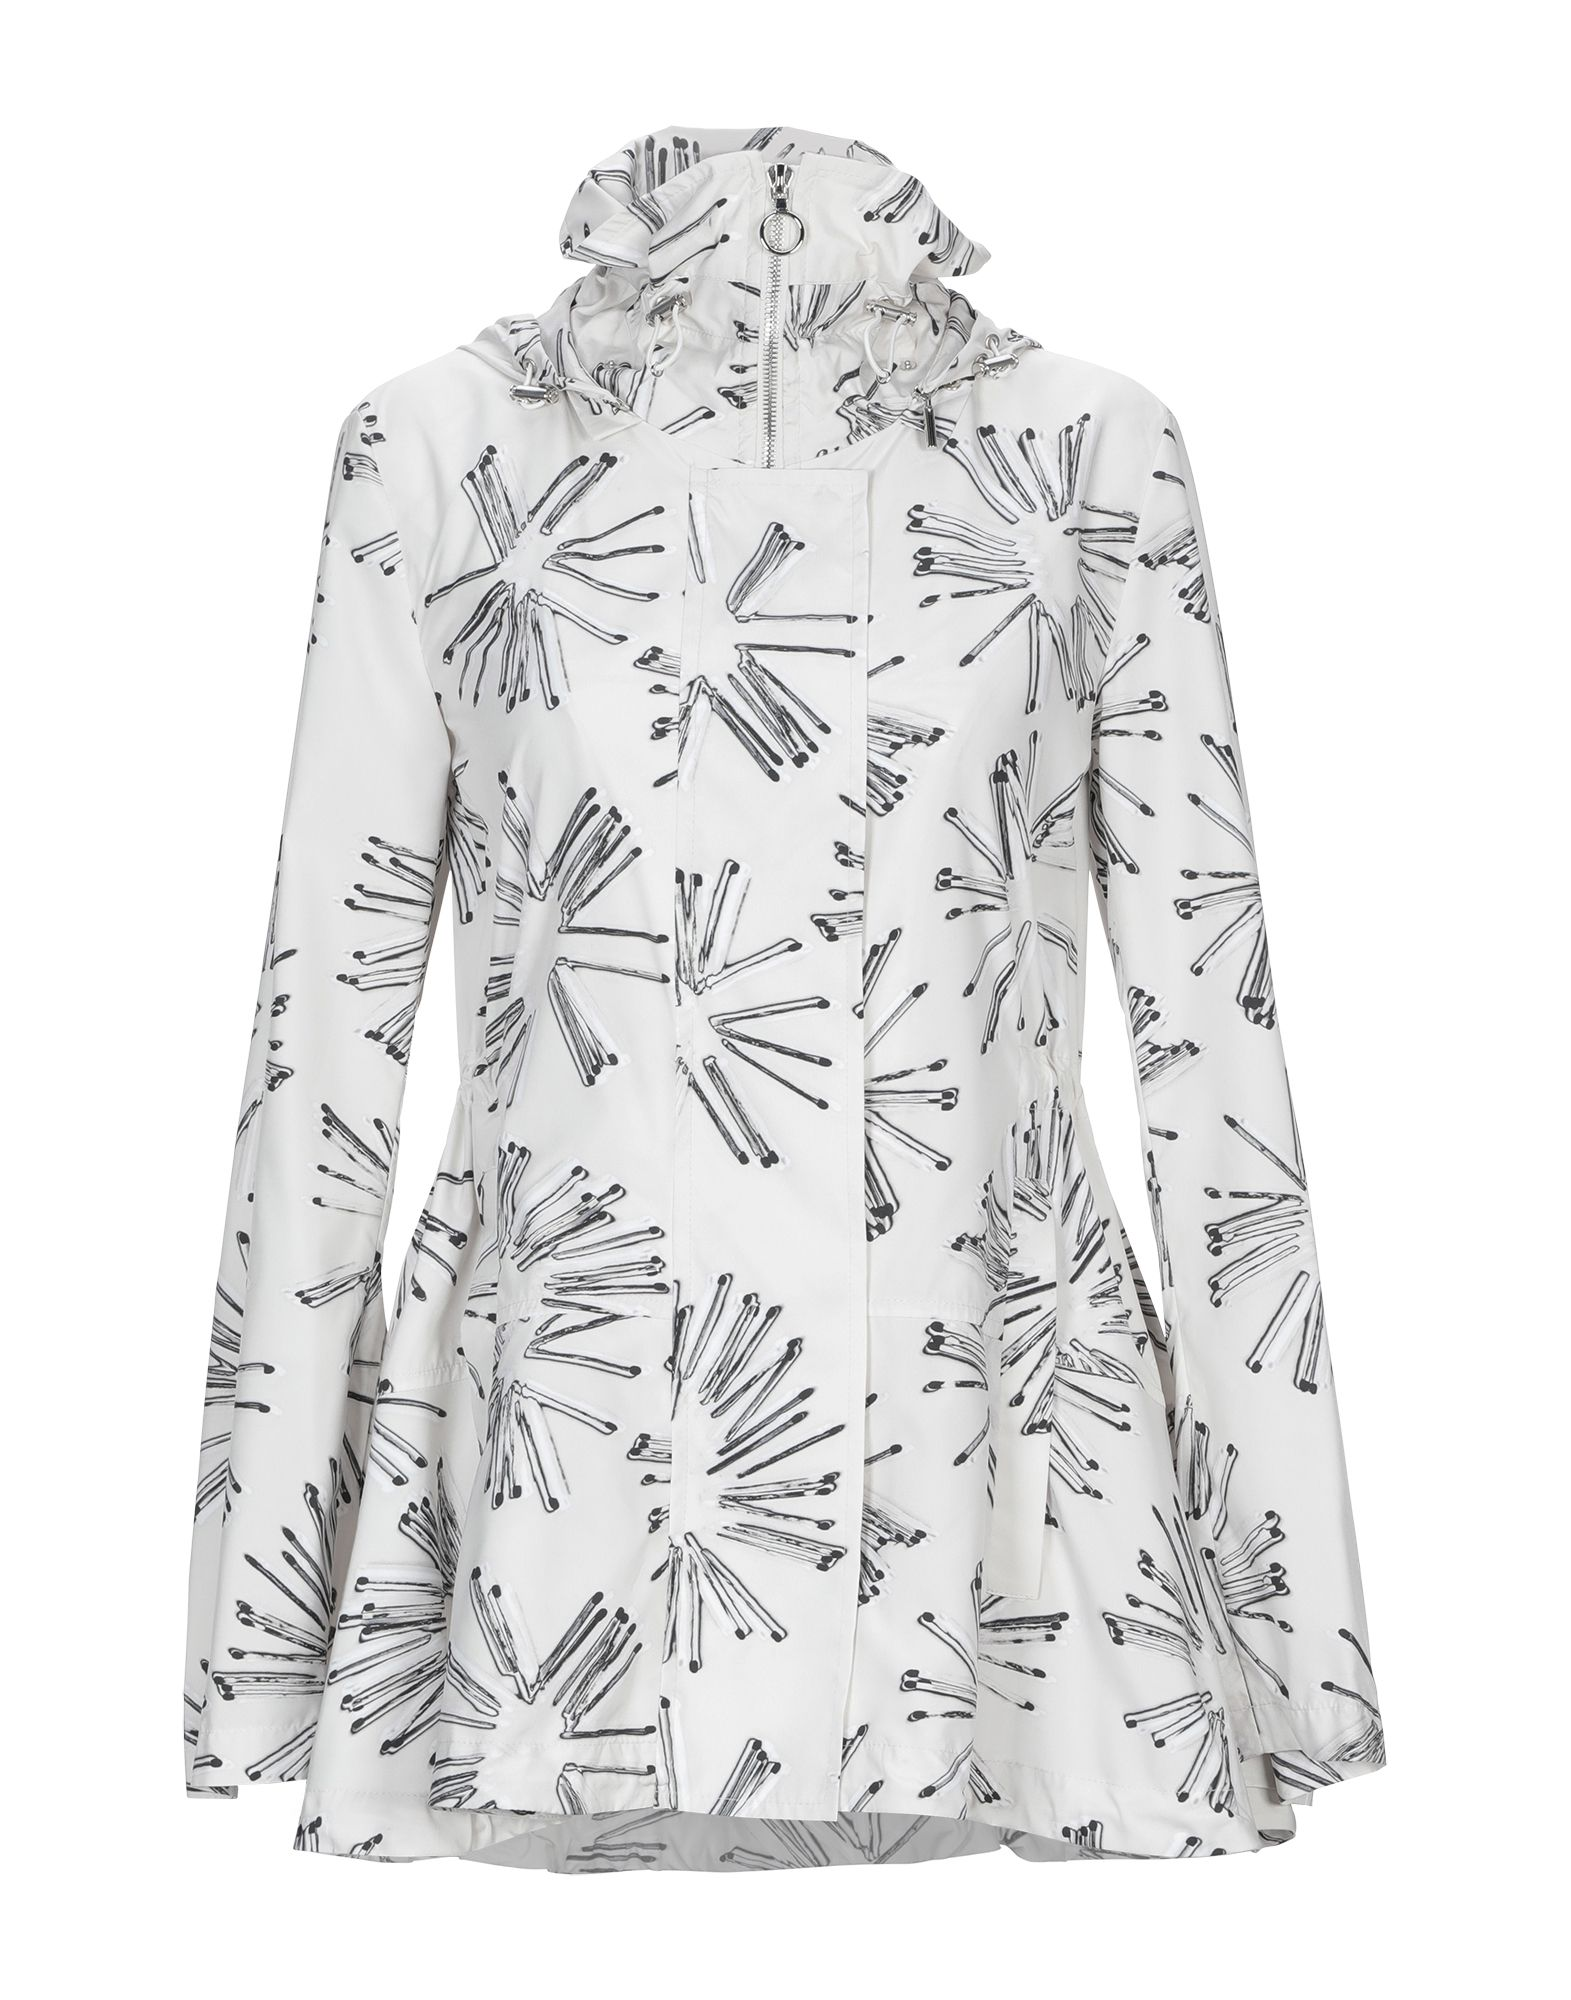 AKRIS PUNTO Jackets. techno fabric, no appliqués, multicolor pattern, single-breasted, snap-buttons, zip, hooded collar, multipockets, long sleeves, unlined. 100% Polyester